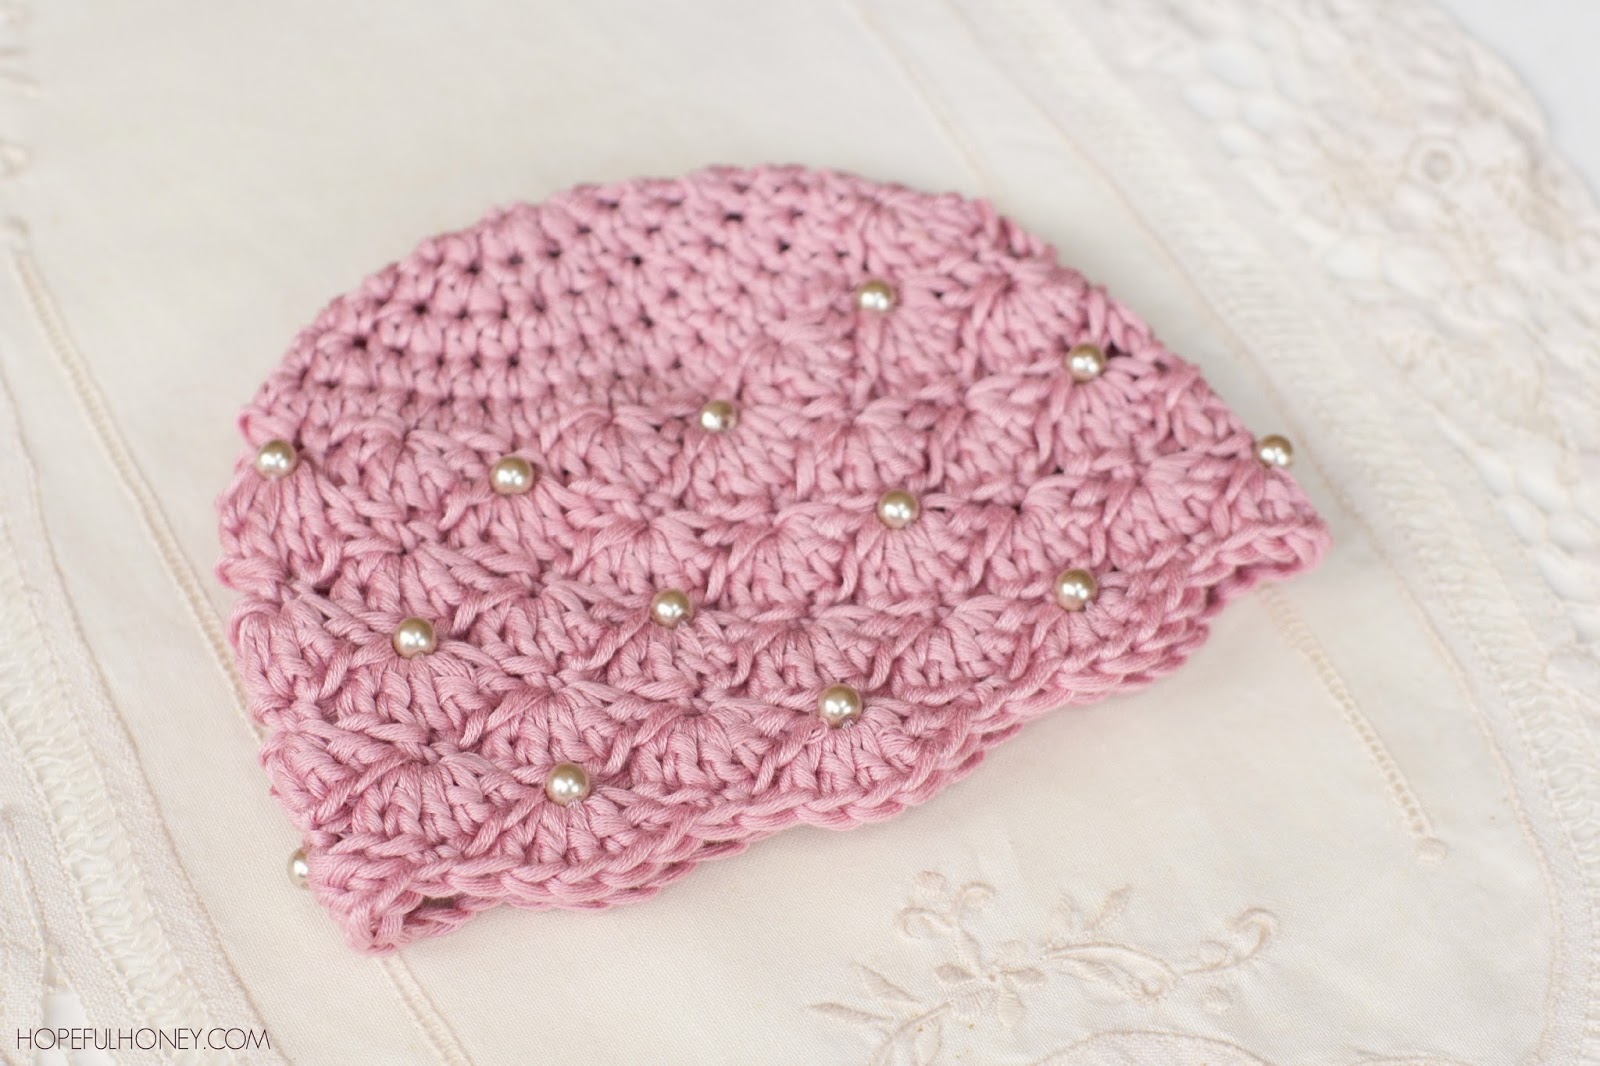 ... Craft, Crochet, Create: Vintage Pearl Baby Hat - Free Crochet Pattern